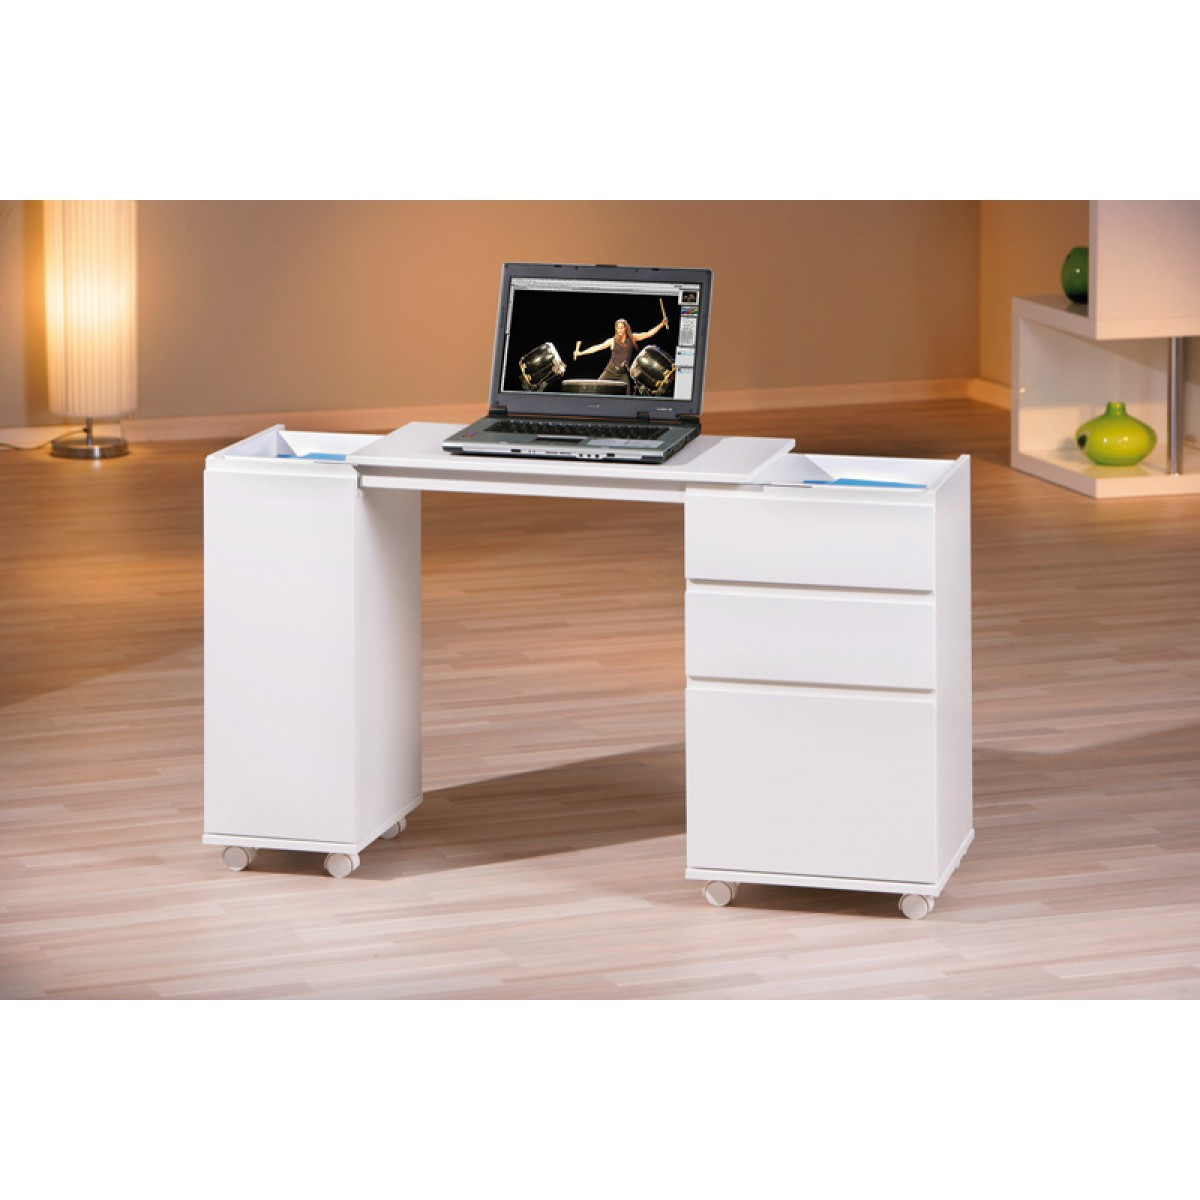 mobile scrivania allungabile laptop con cassetti in legno On scrivania allungabile